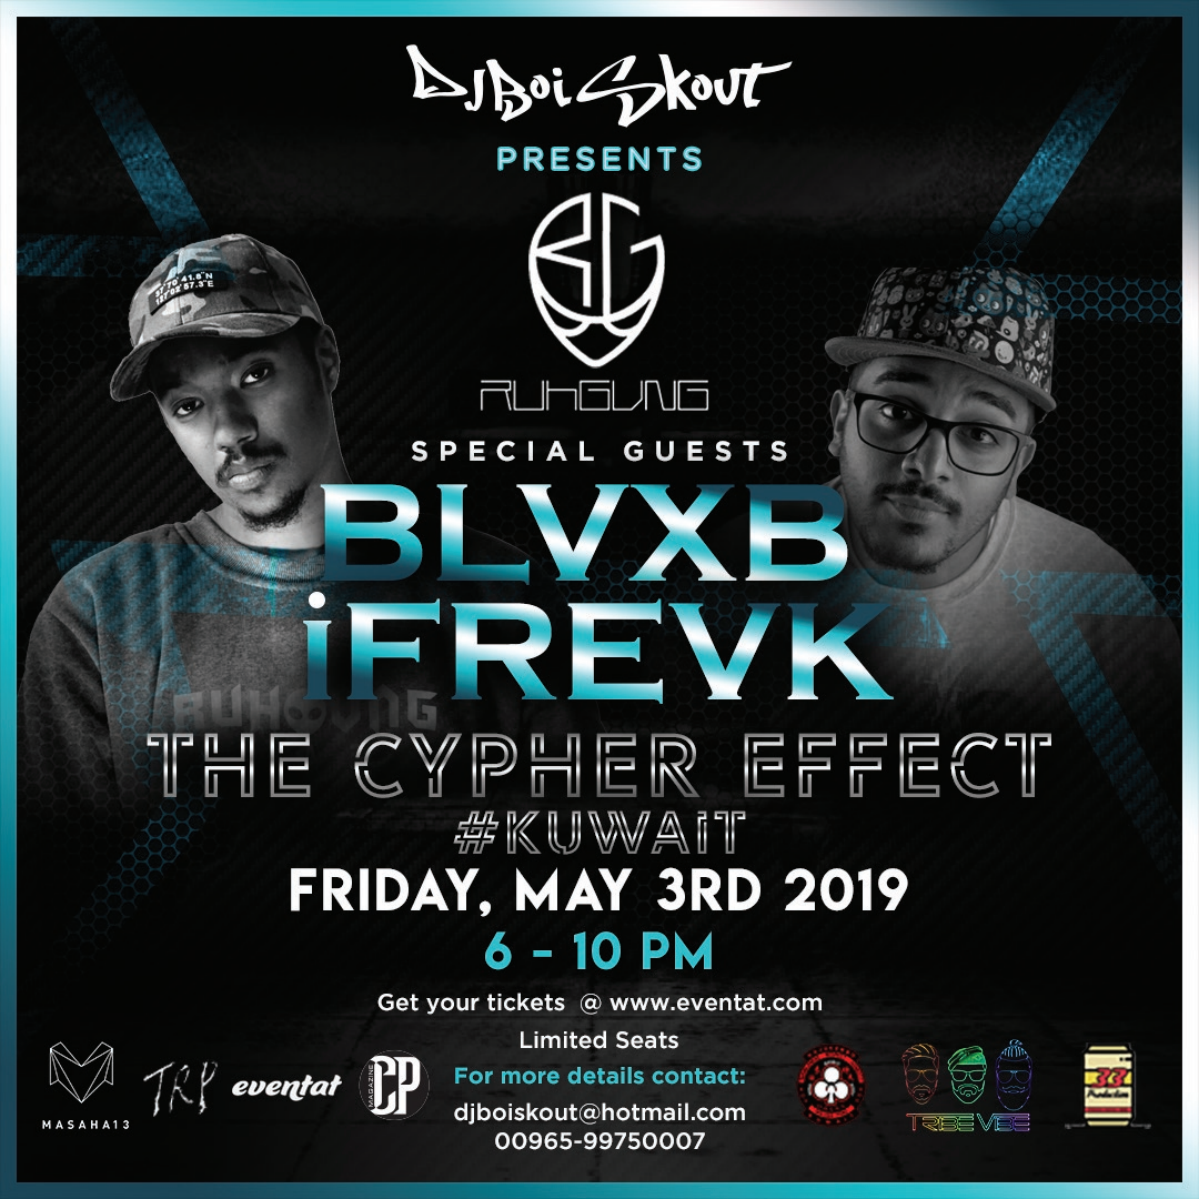 The Cypher Effect #Kuwait